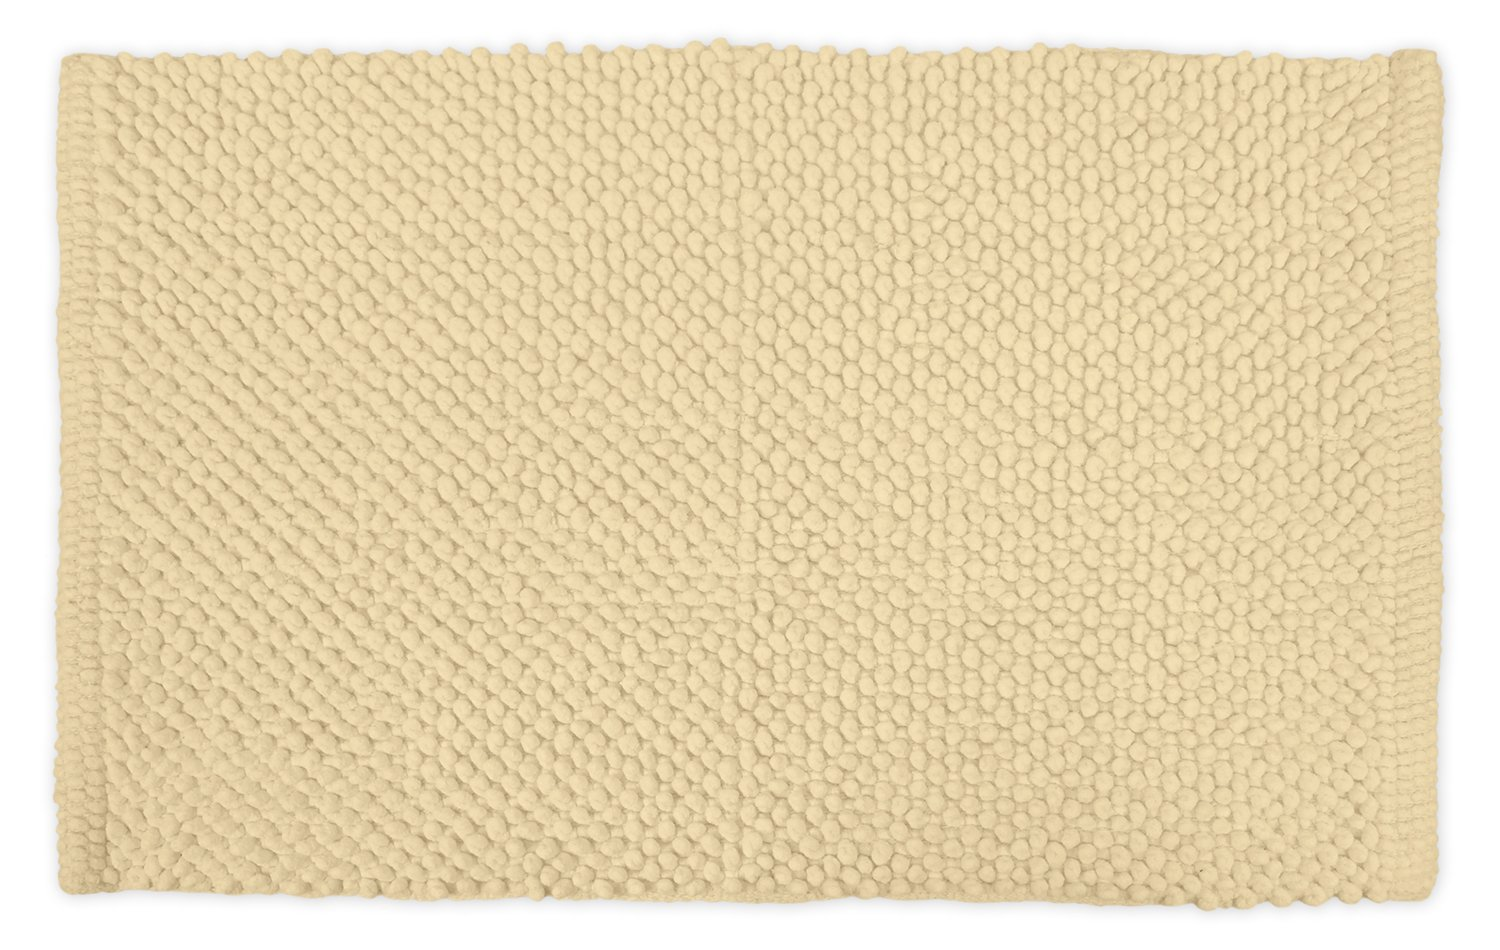 DII Ultra Soft Plush Spa Pebble Chenille Bath Mat Place in Front of Shower, Vanity, Bath Tub, Sink, and Toilet, 17 x 24 - Cream CAMZ32955